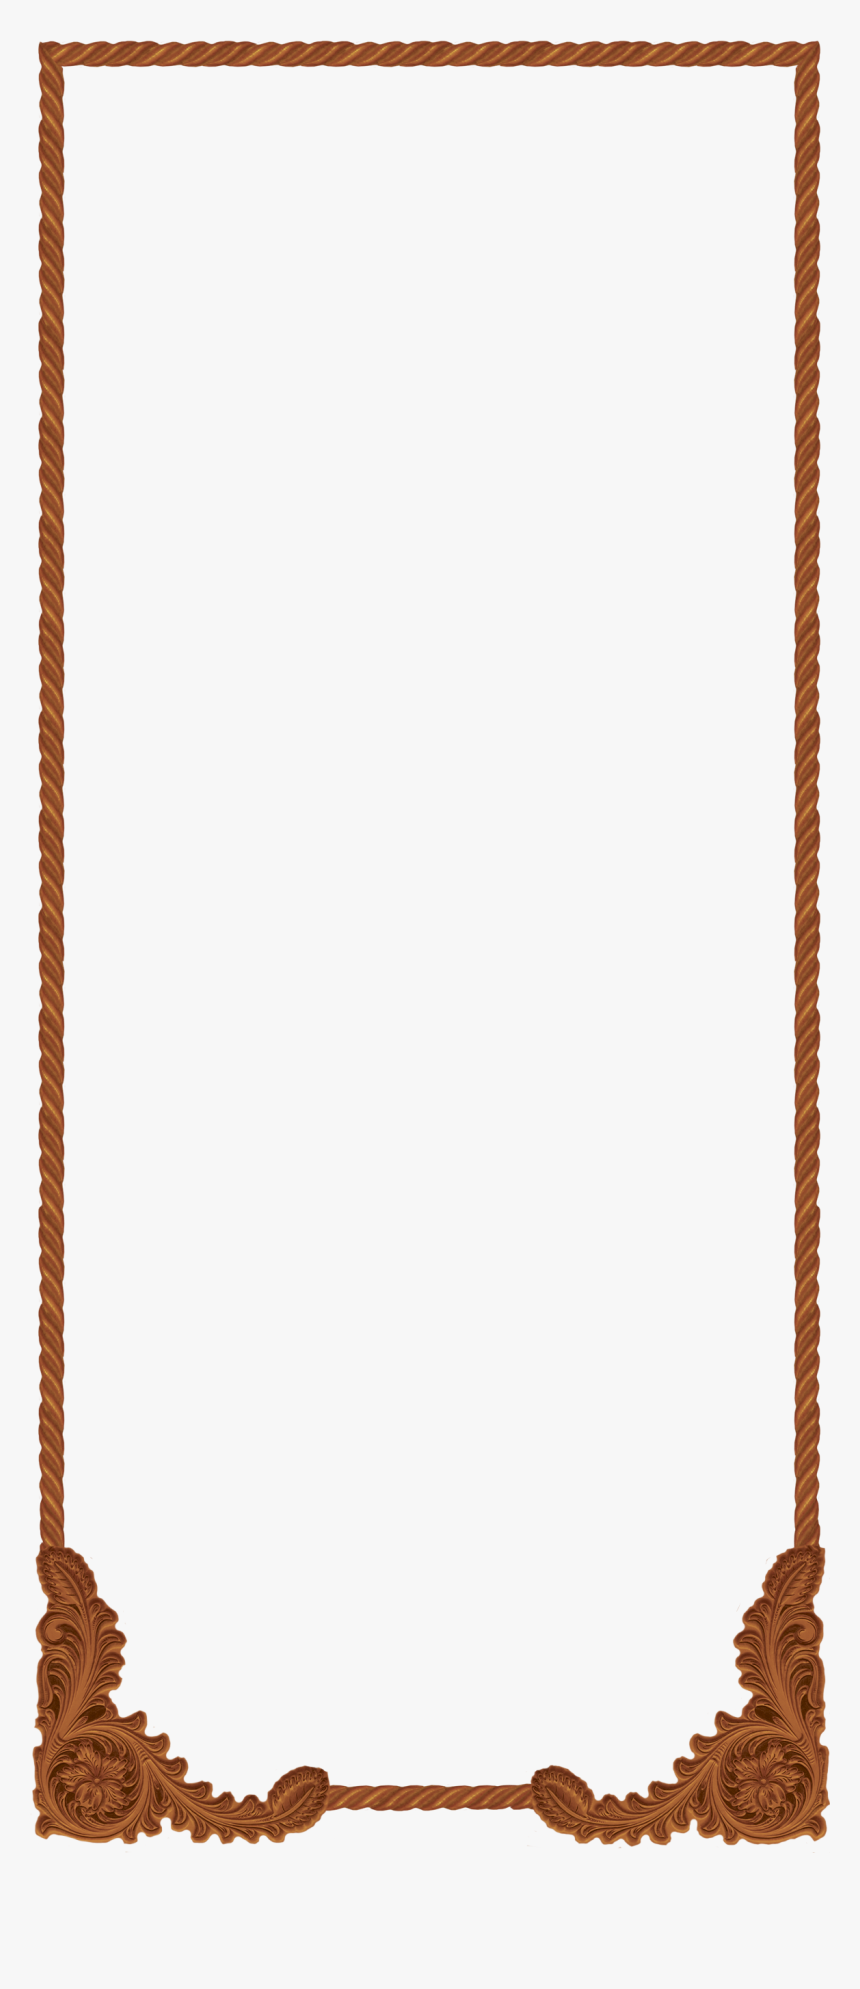 Hd Bar J Leather - Paper Product, HD Png Download, Free Download